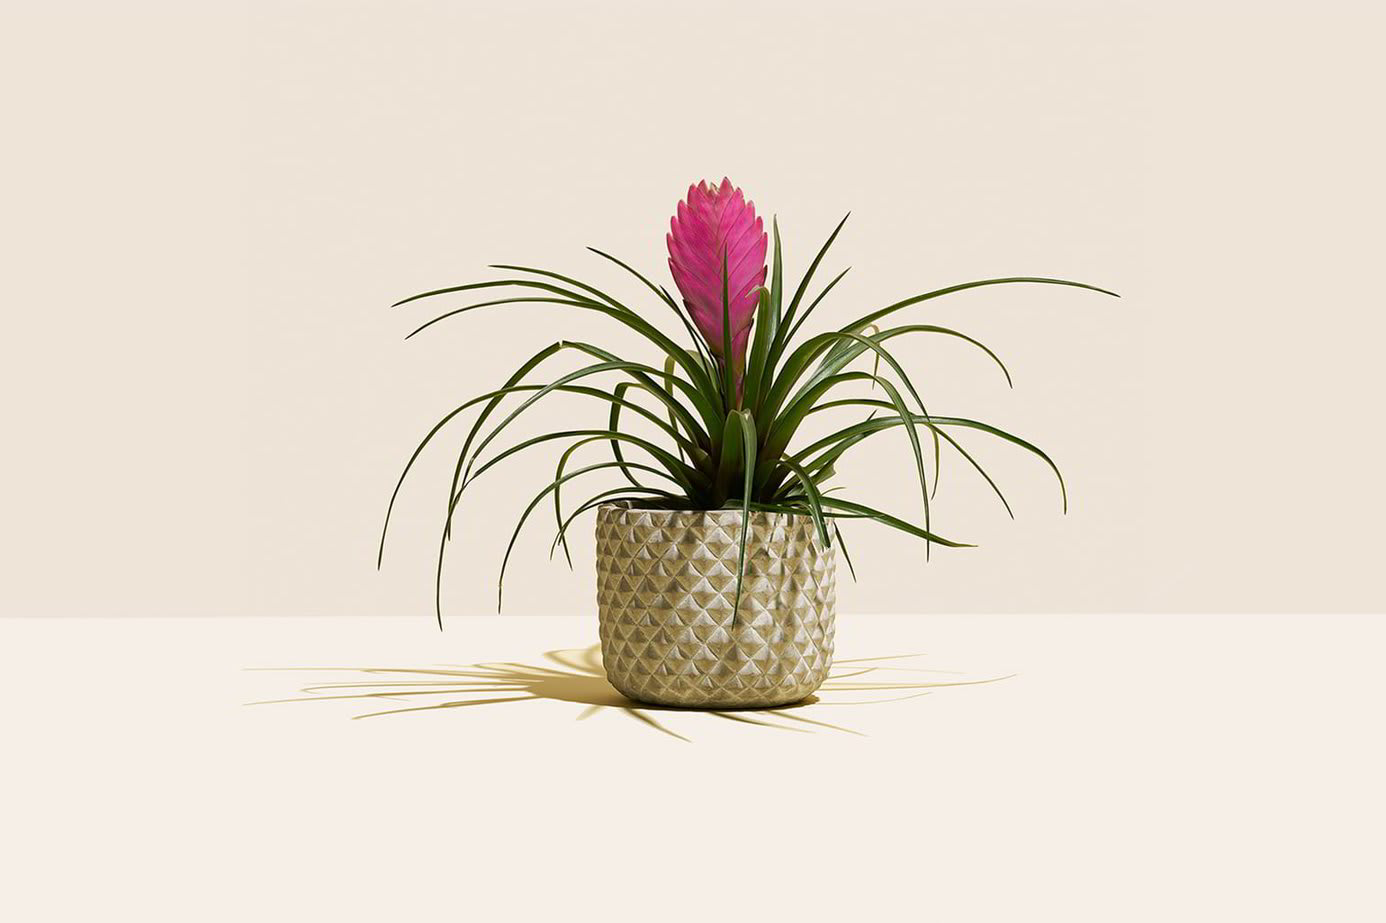 A small houseplant